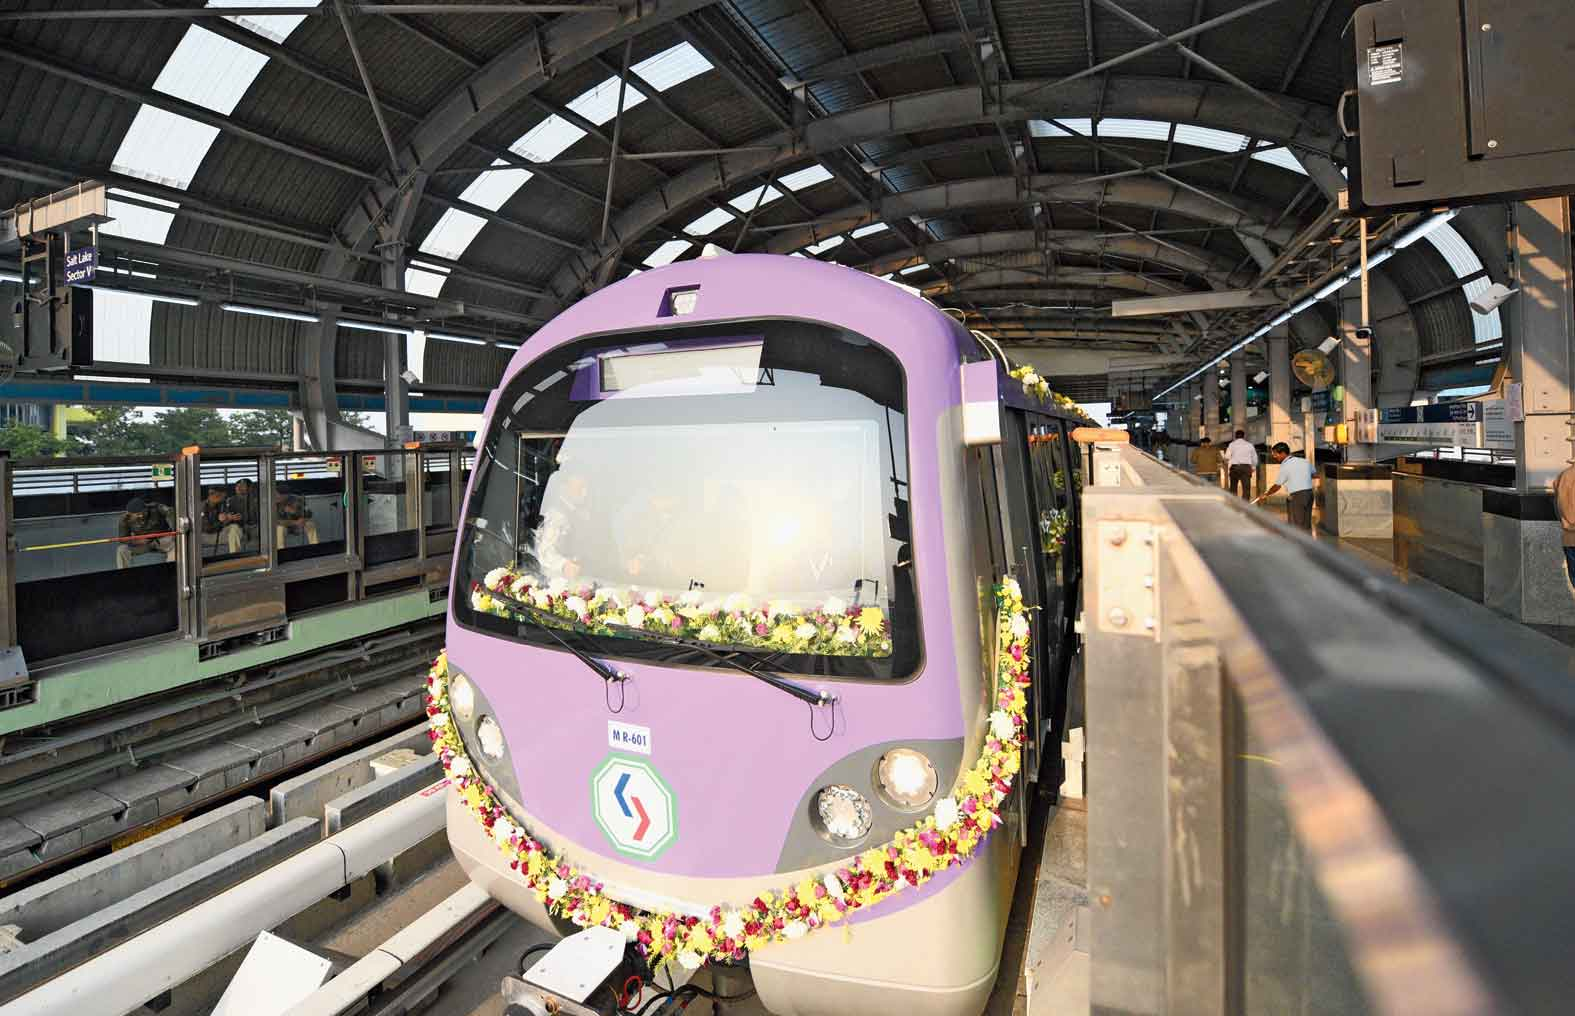 East-West Metro finally took off on February 14